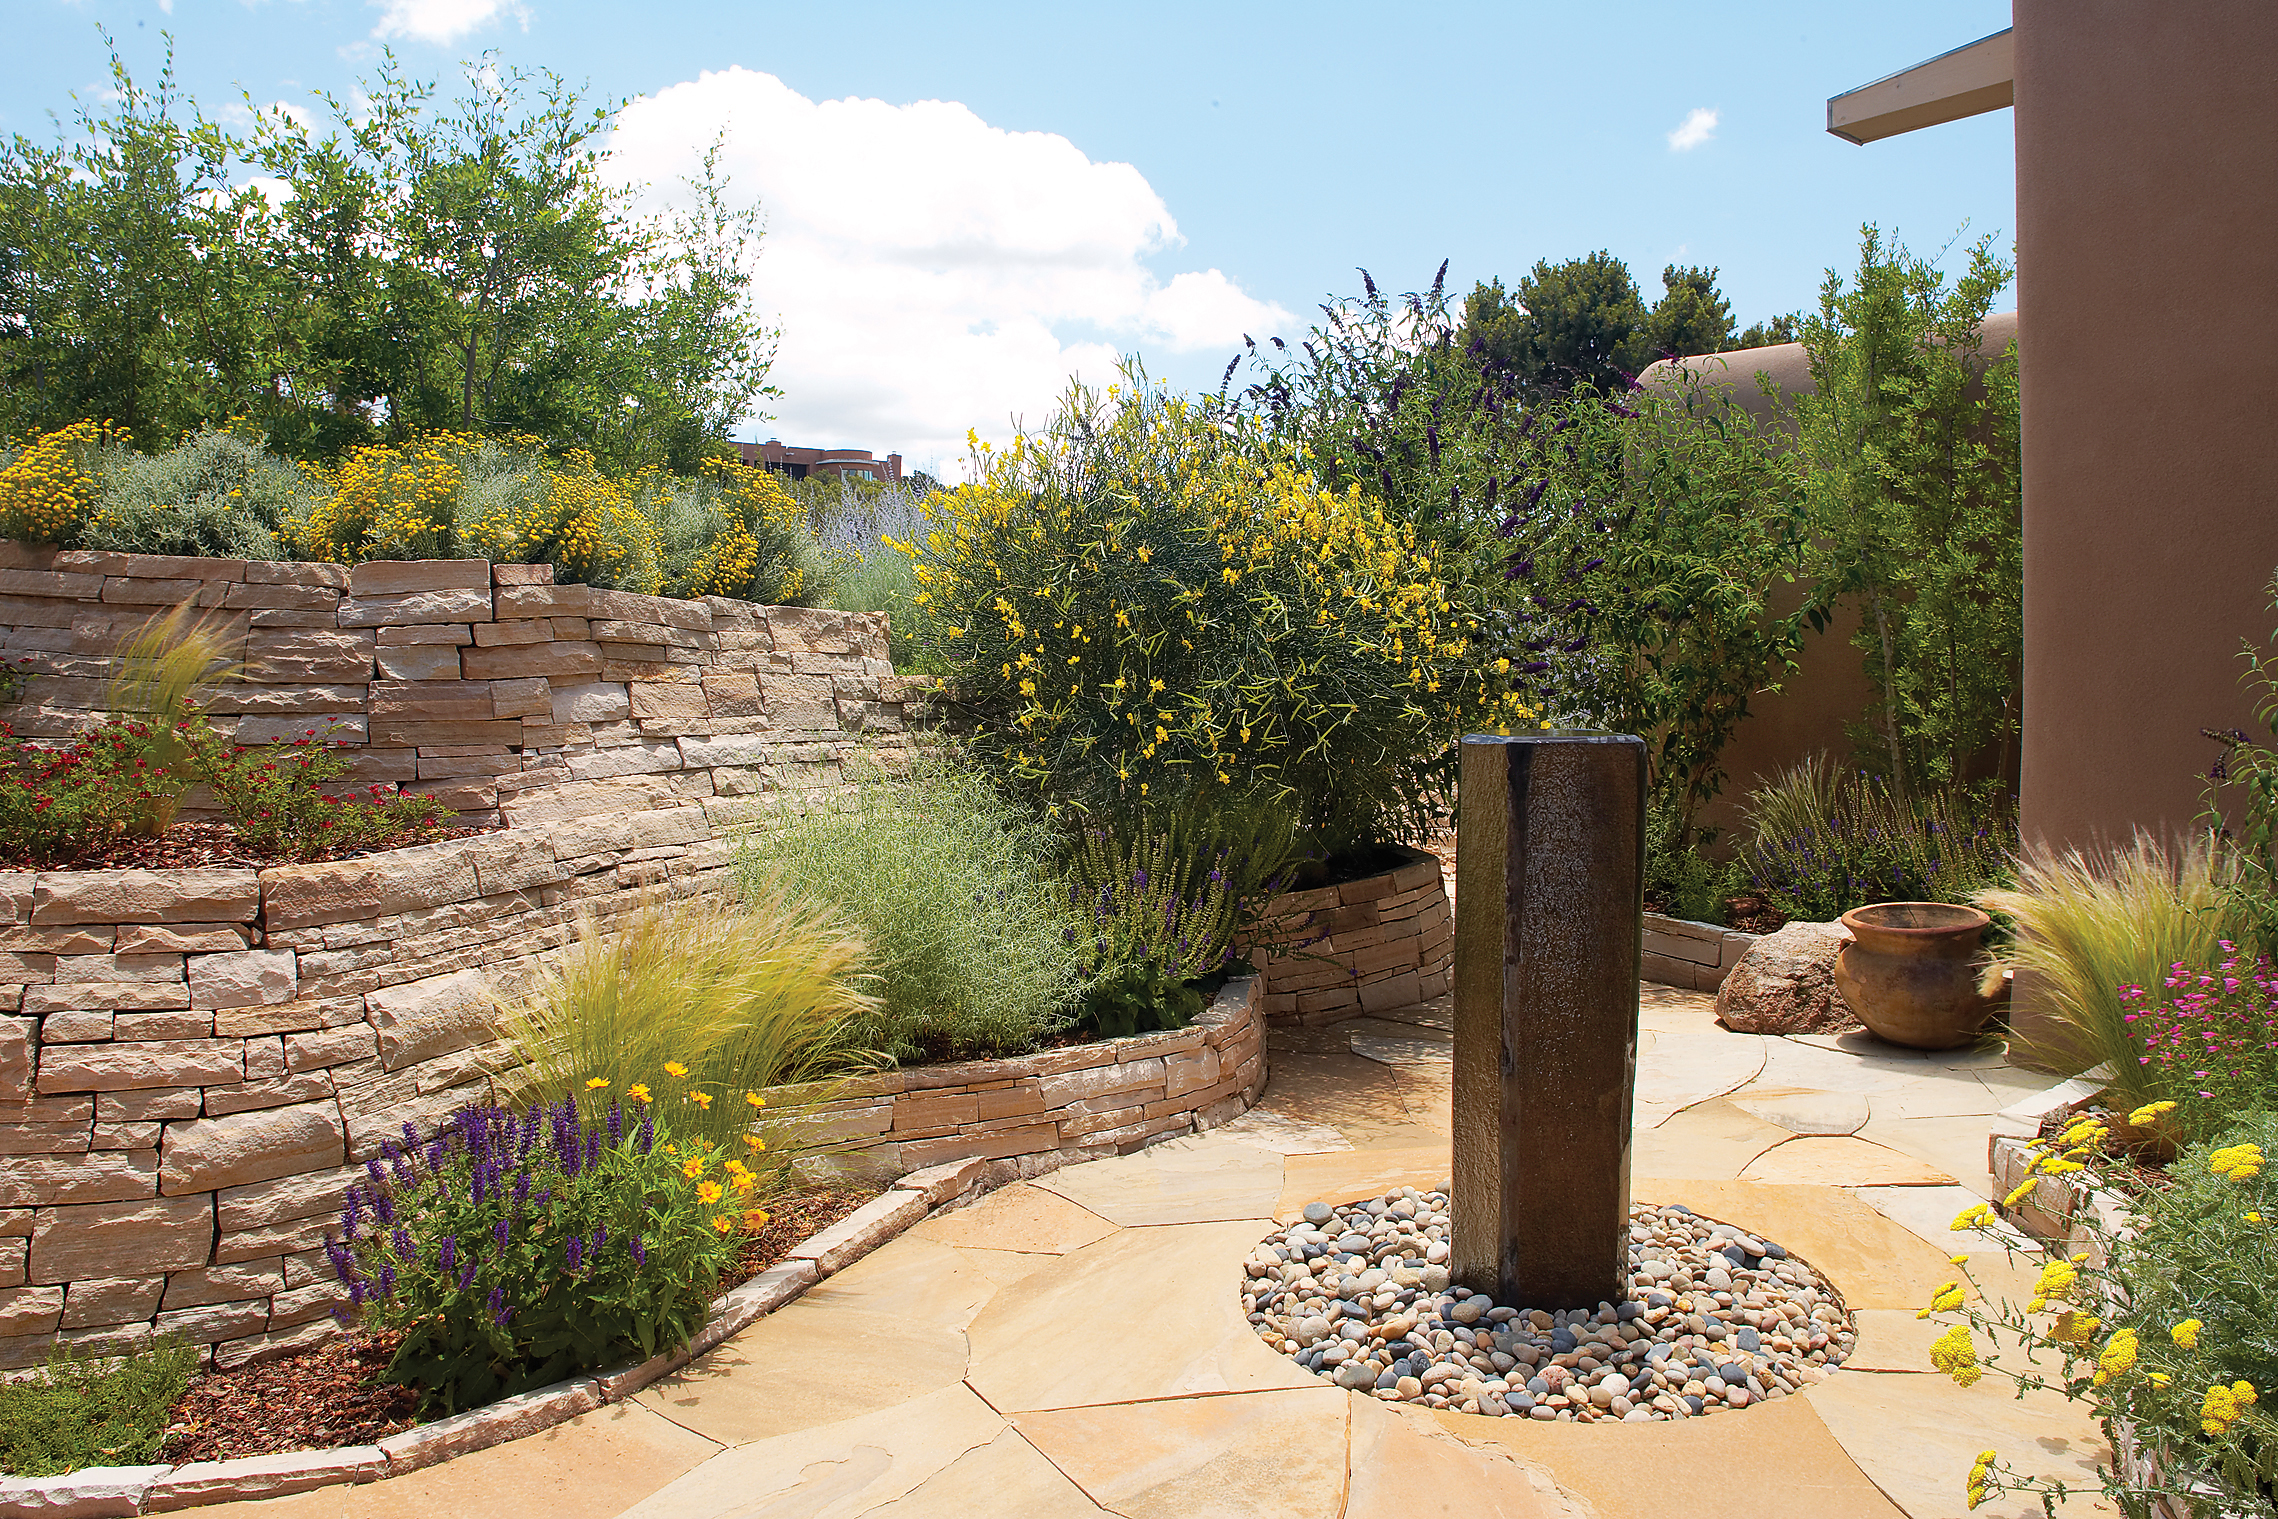 49 landscaping ideas with stone sunset magazine for Fountain grass landscaping ideas